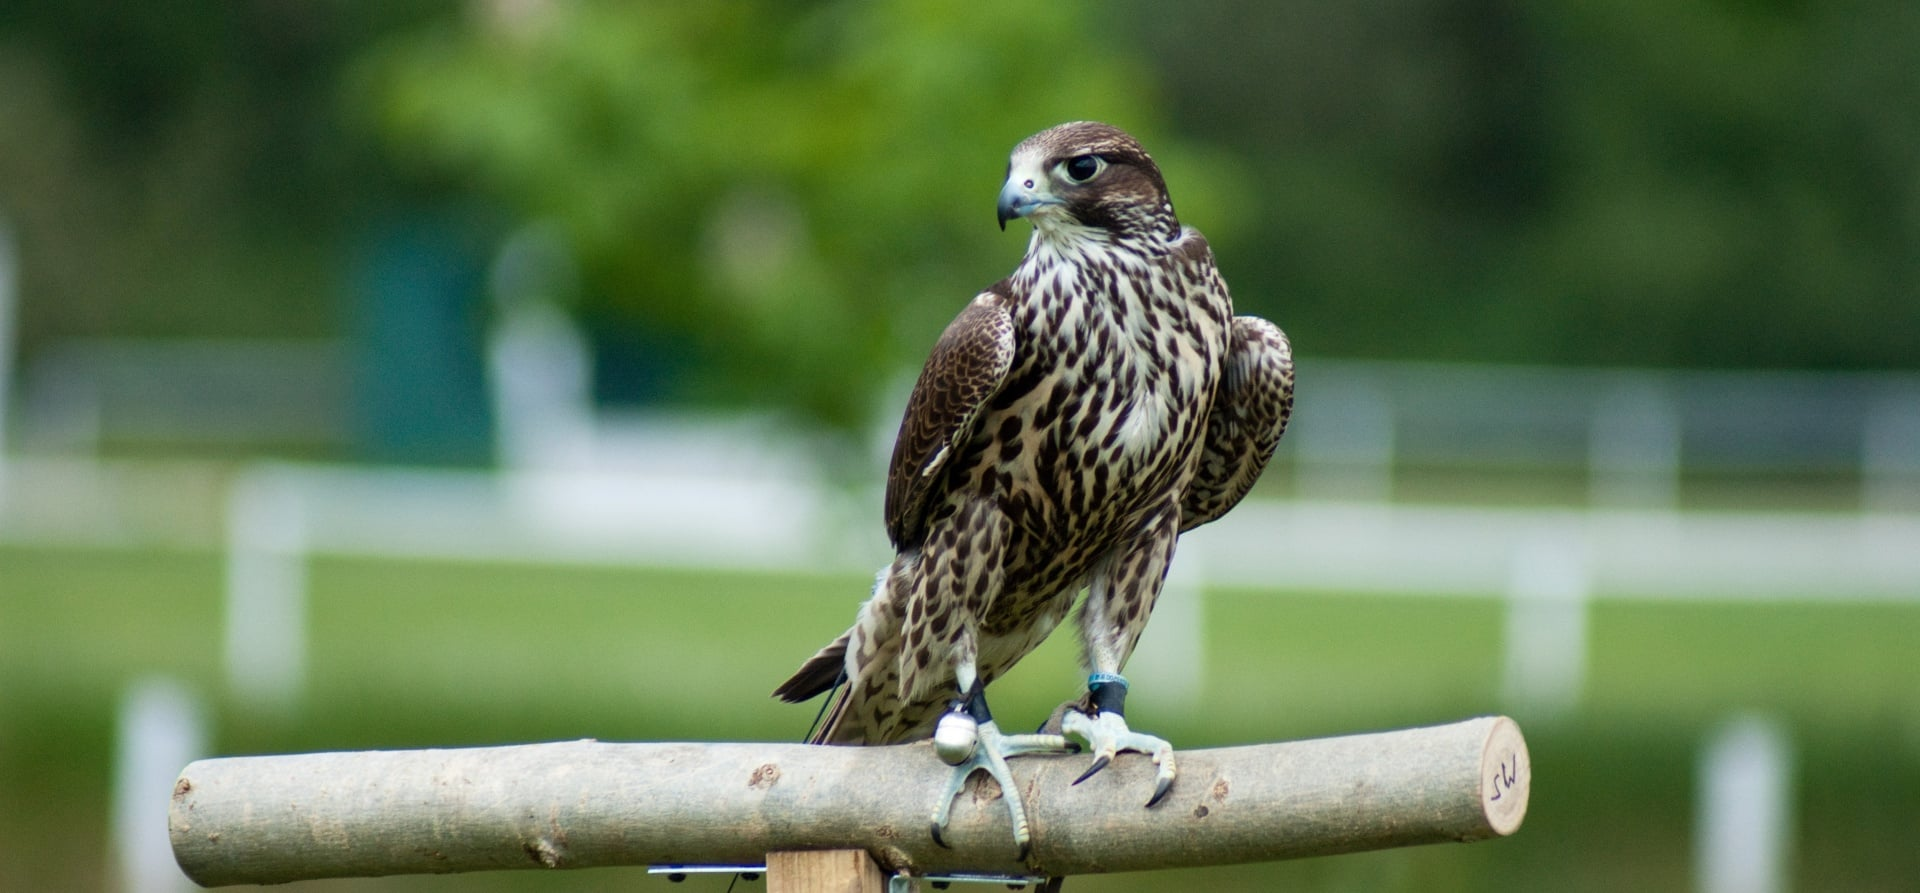 Bird of Prey Full Day Experience - Herefordshire-2